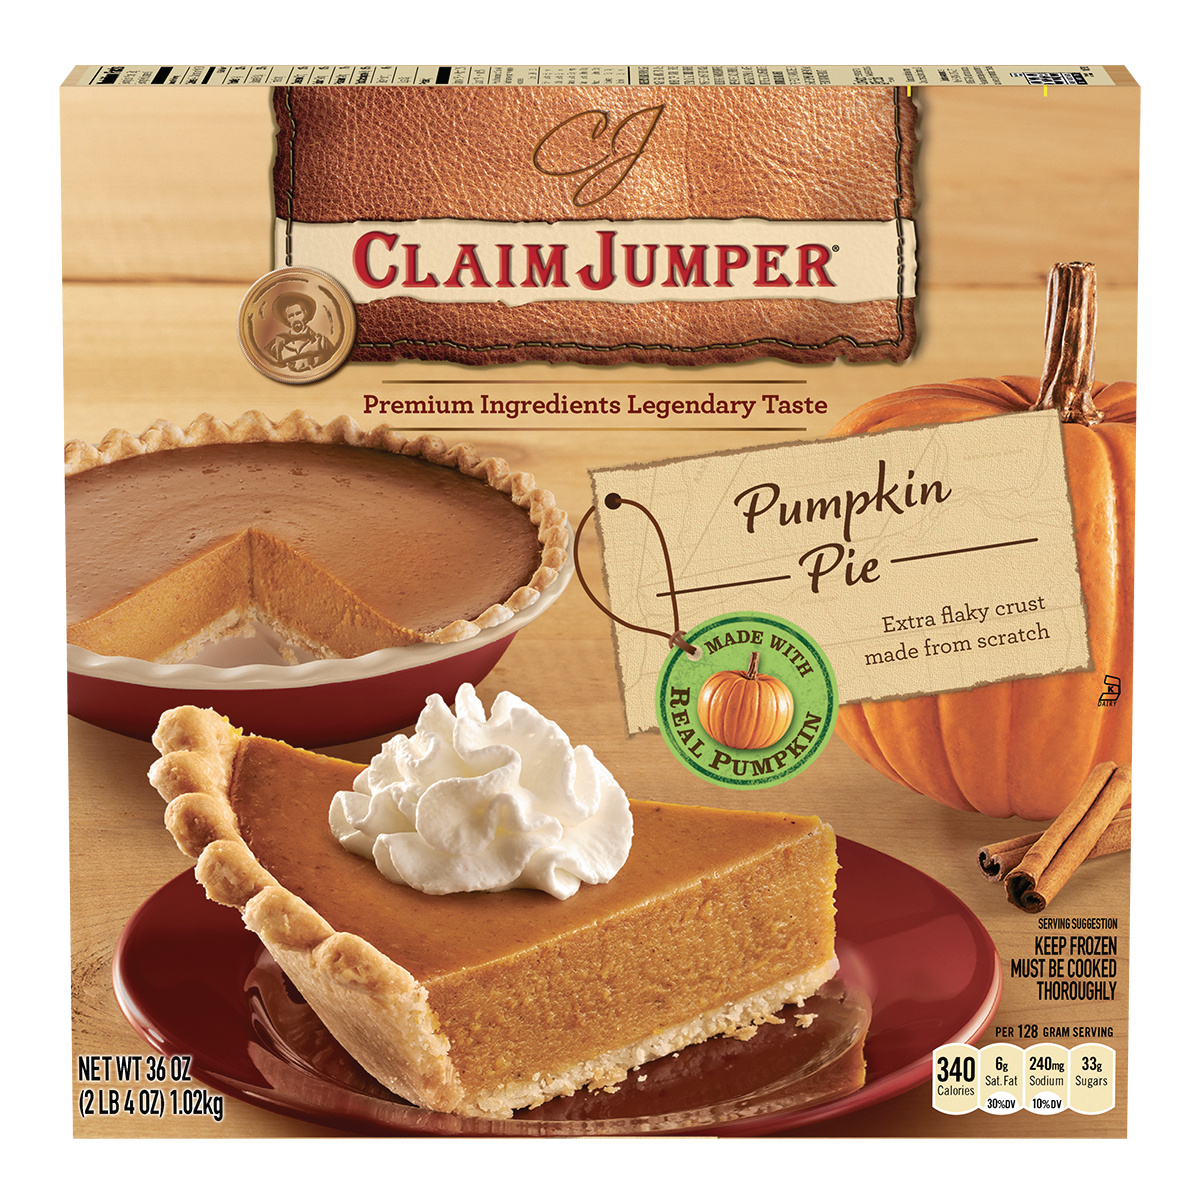 Claim Jumper Pumpkin Pie, 36 oz